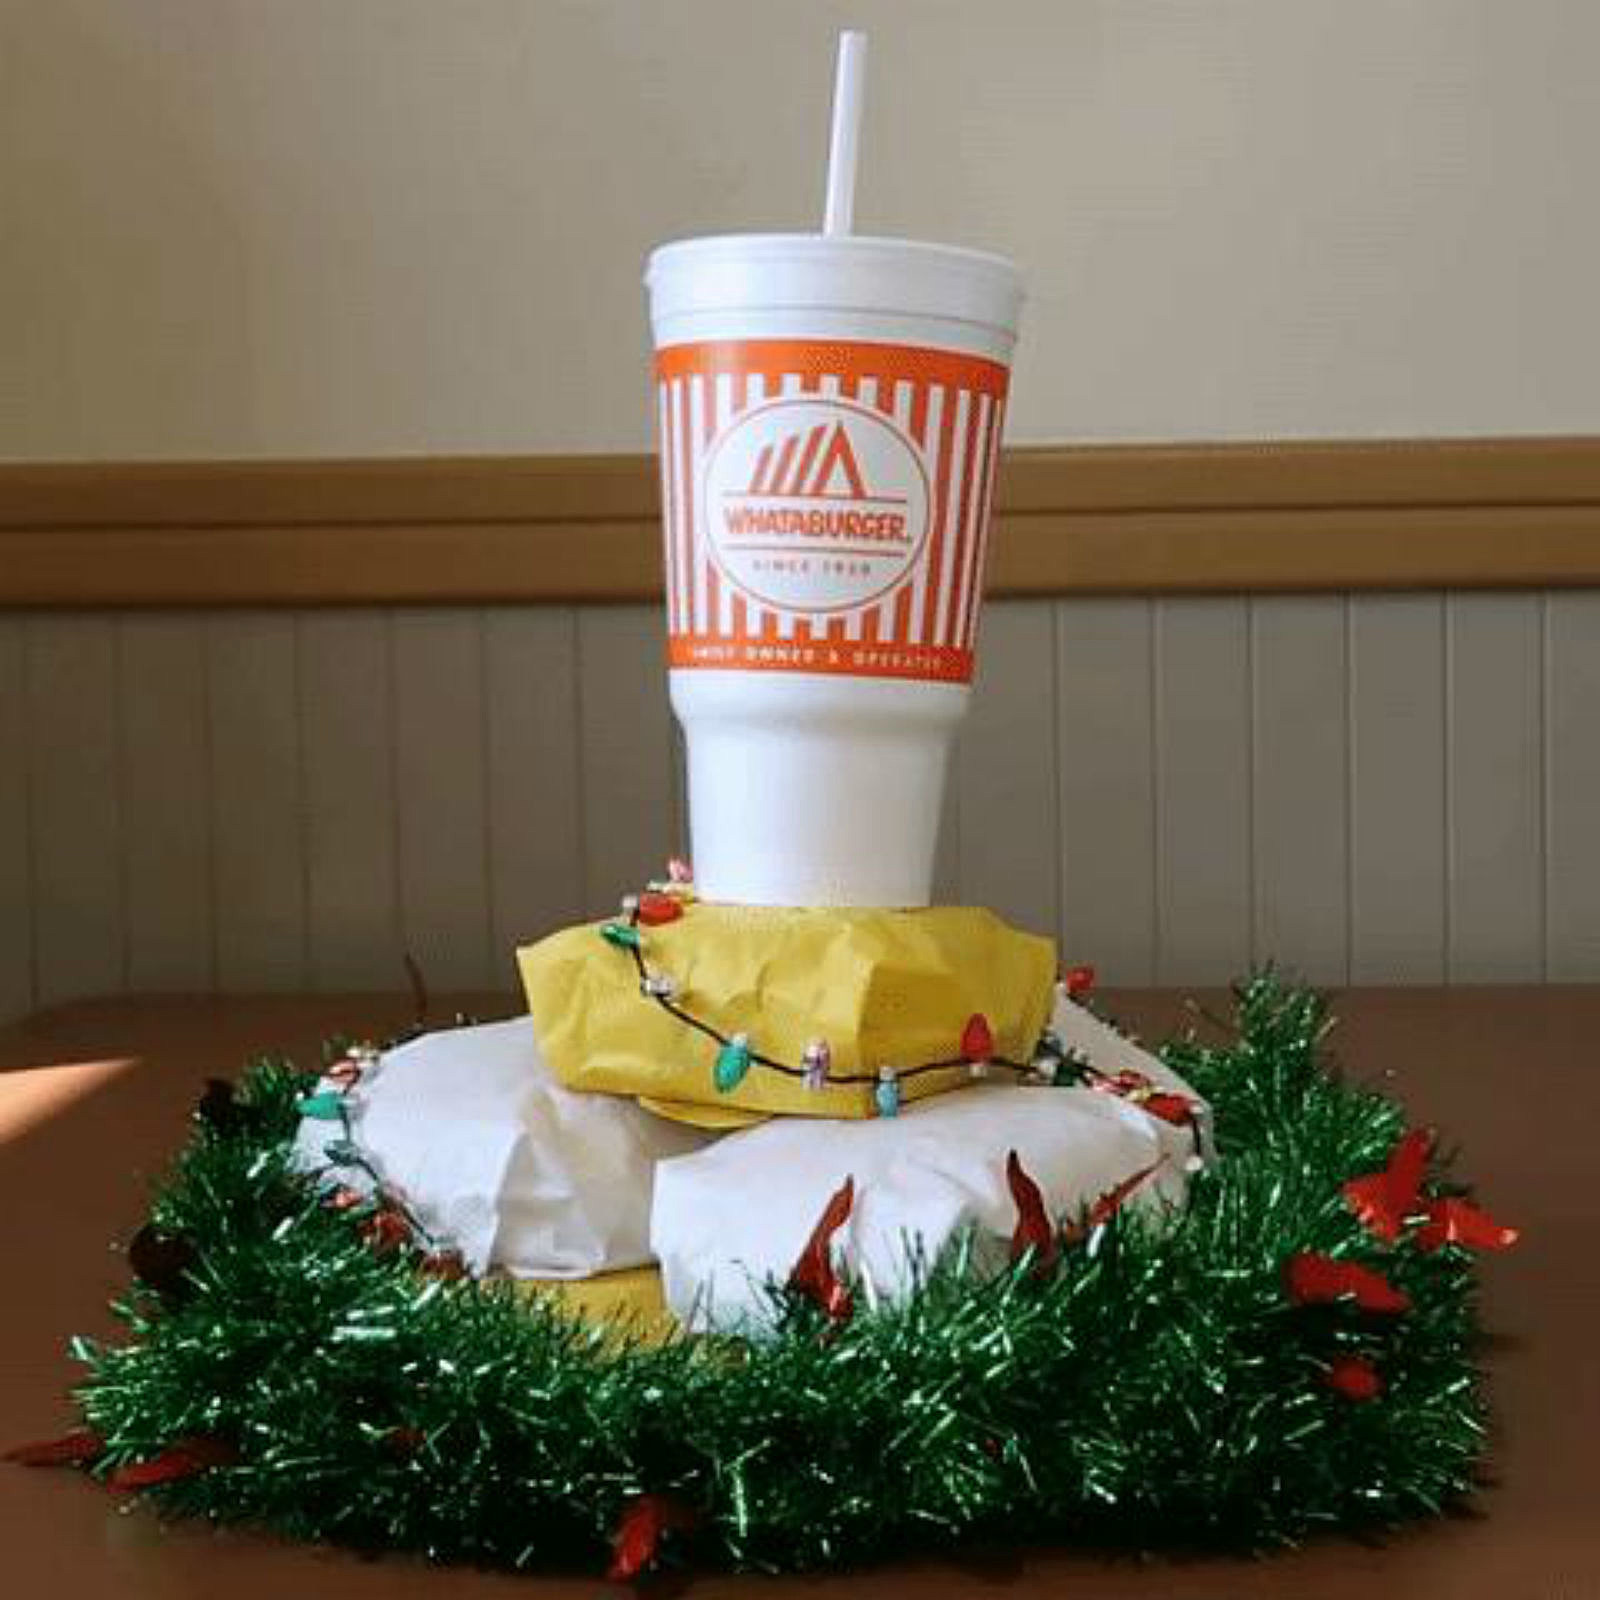 c5089390776 Environmental Group asks Whataburger to Replace Styrofoam Cups